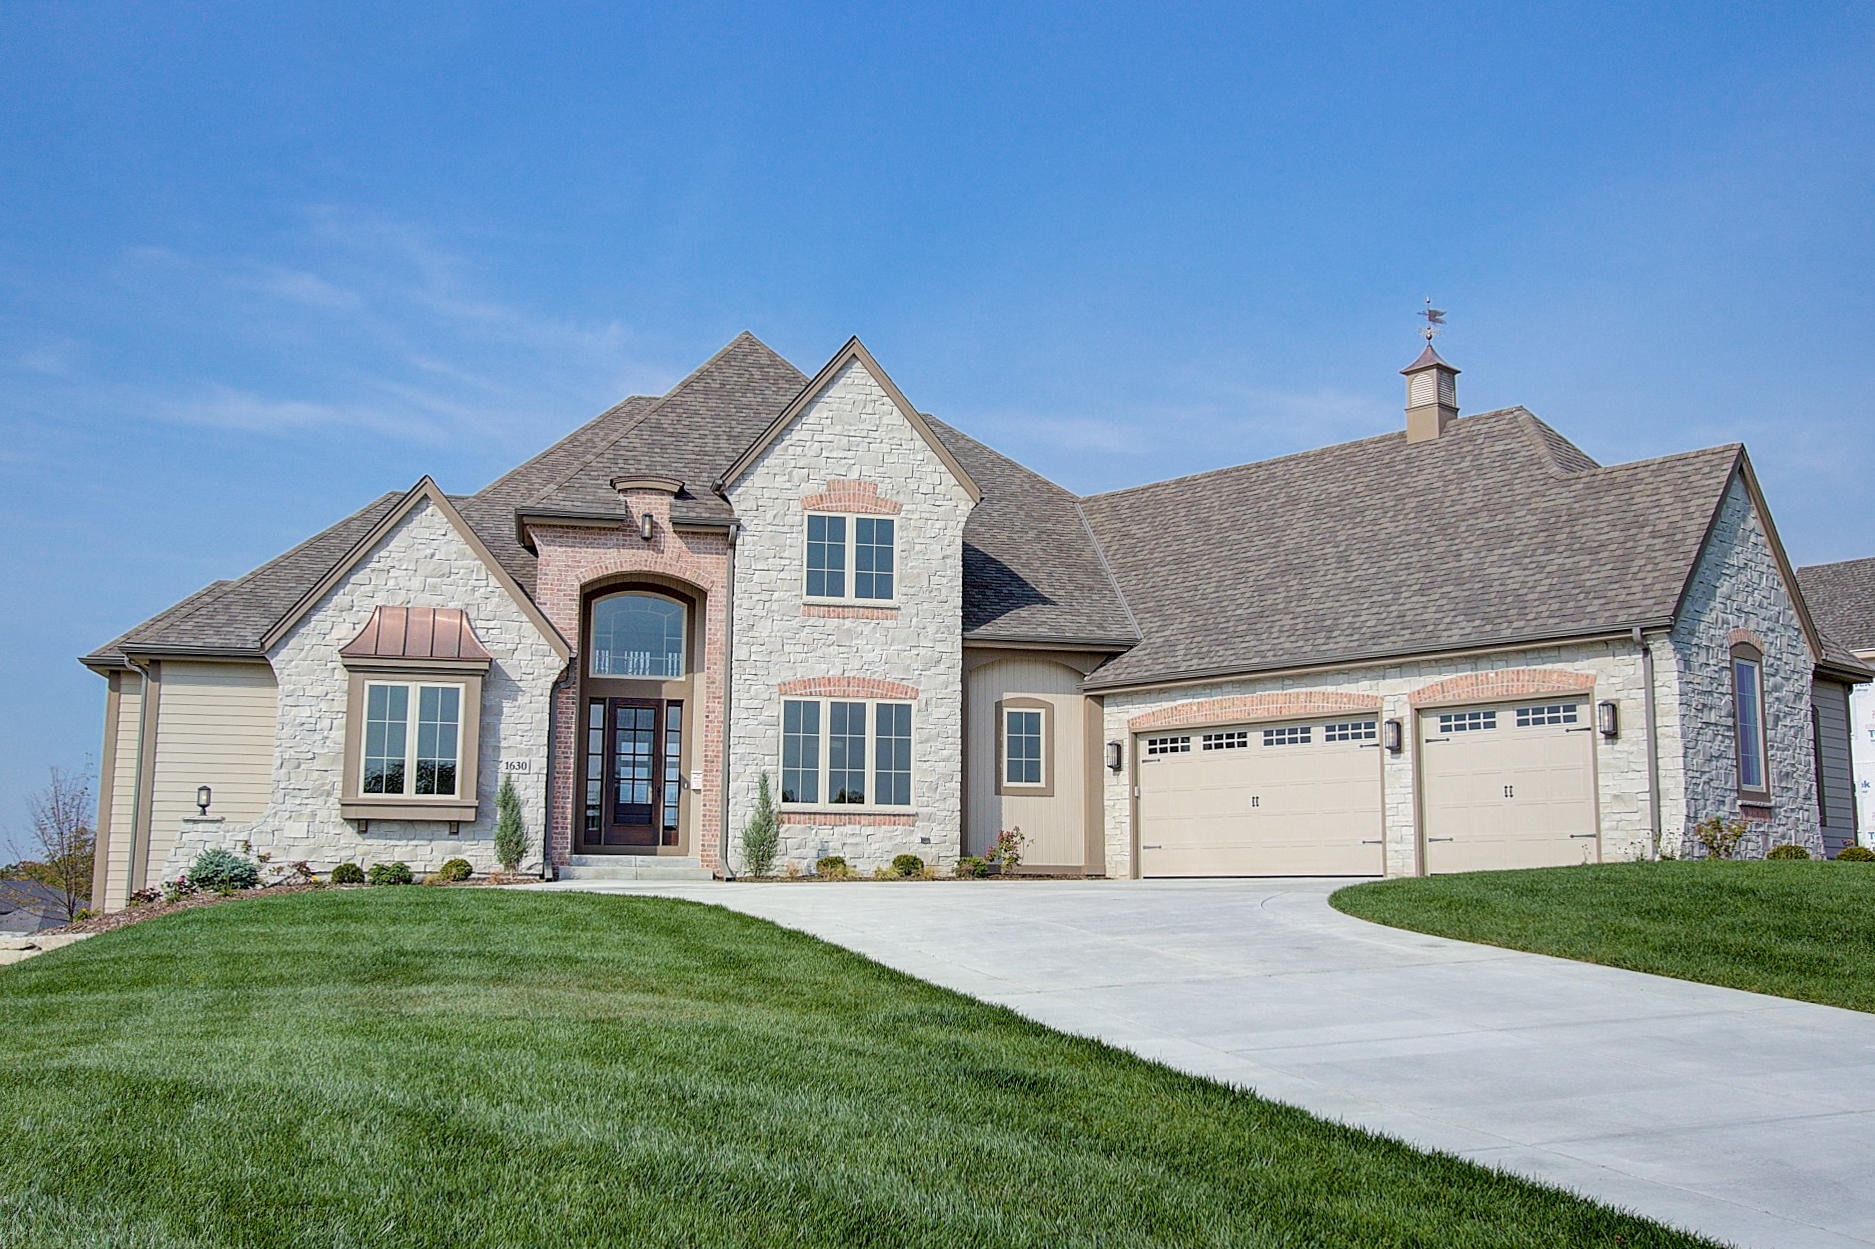 Photo of 1630 Twisted Oak Ct, Hartland, WI 53029